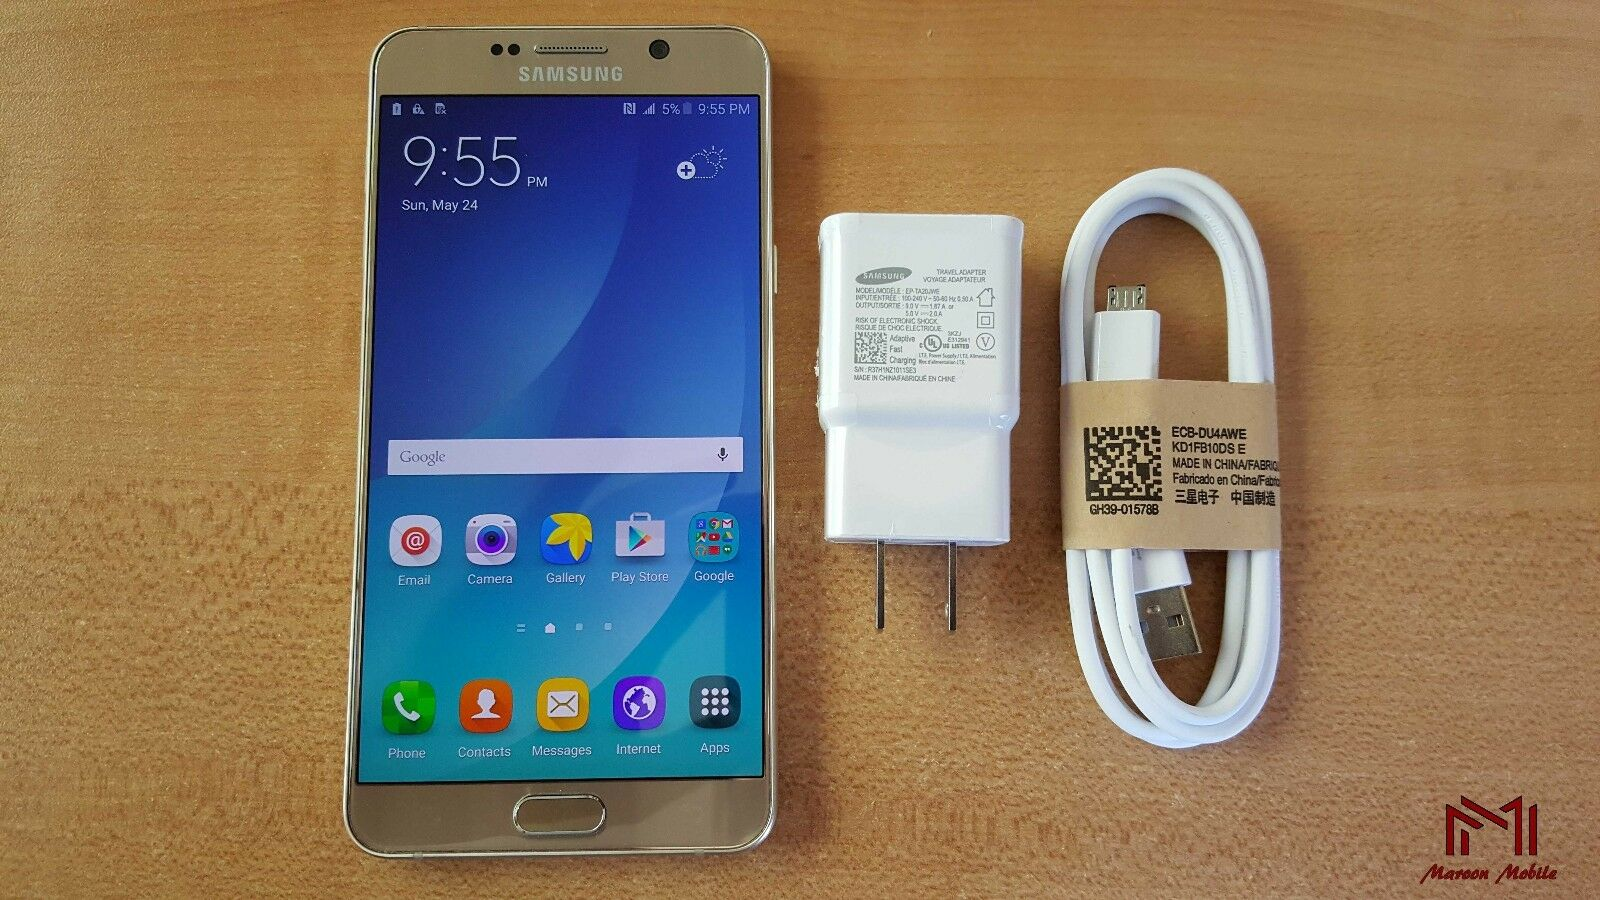 Gold platinum galaxy note 5 now available from t mobile android - Samsung Galaxy Note 5 T Mobile Grade A